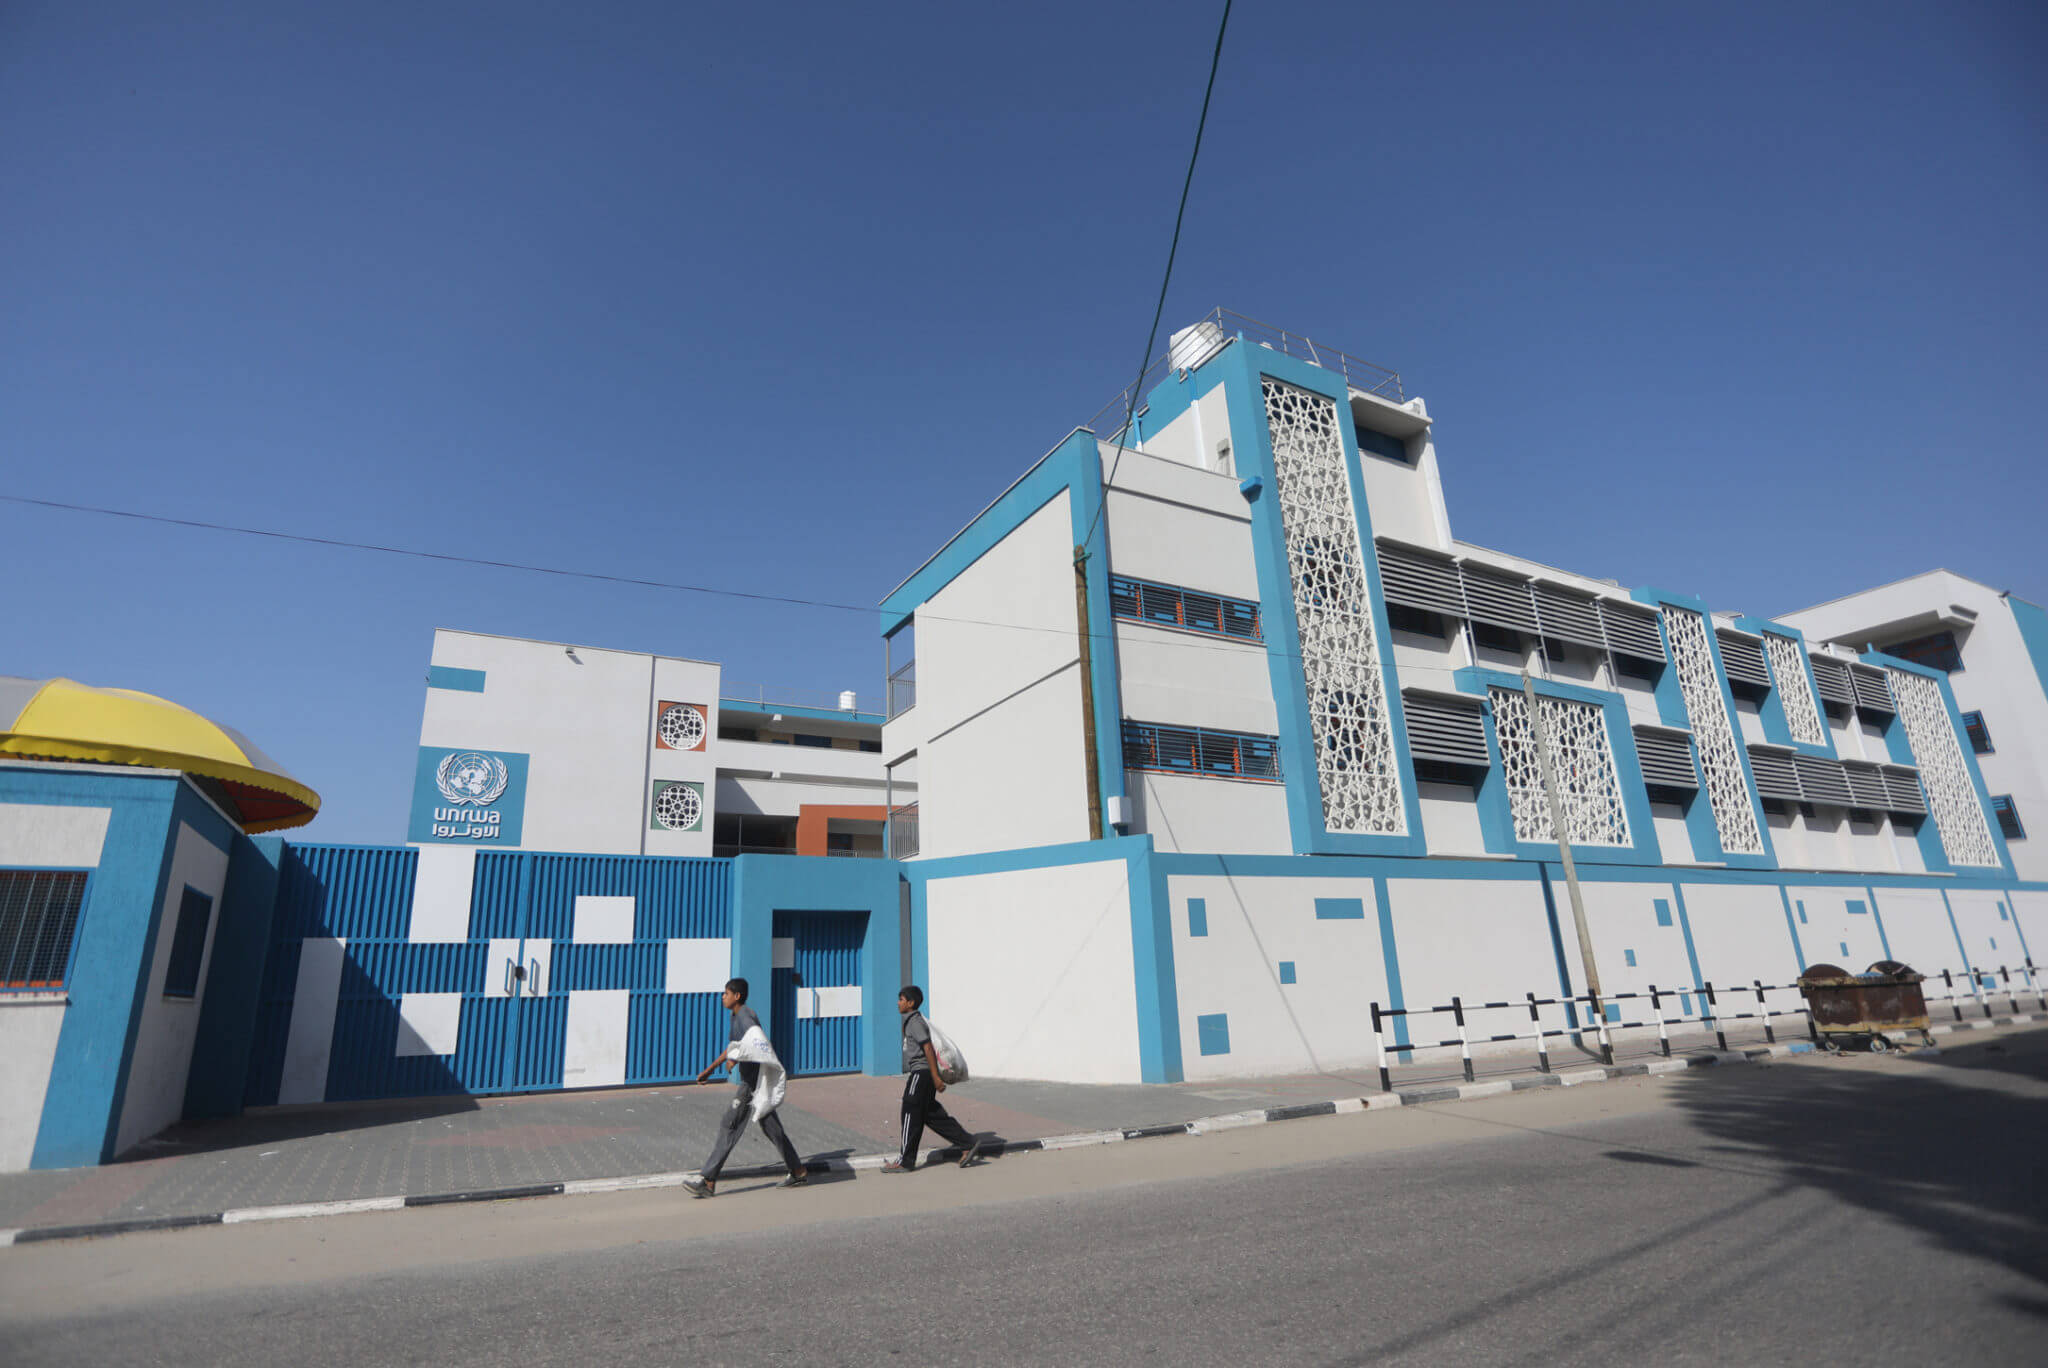 UNRWA has suspended its services and closed all Gaza Strip schools in conjunction with government schools